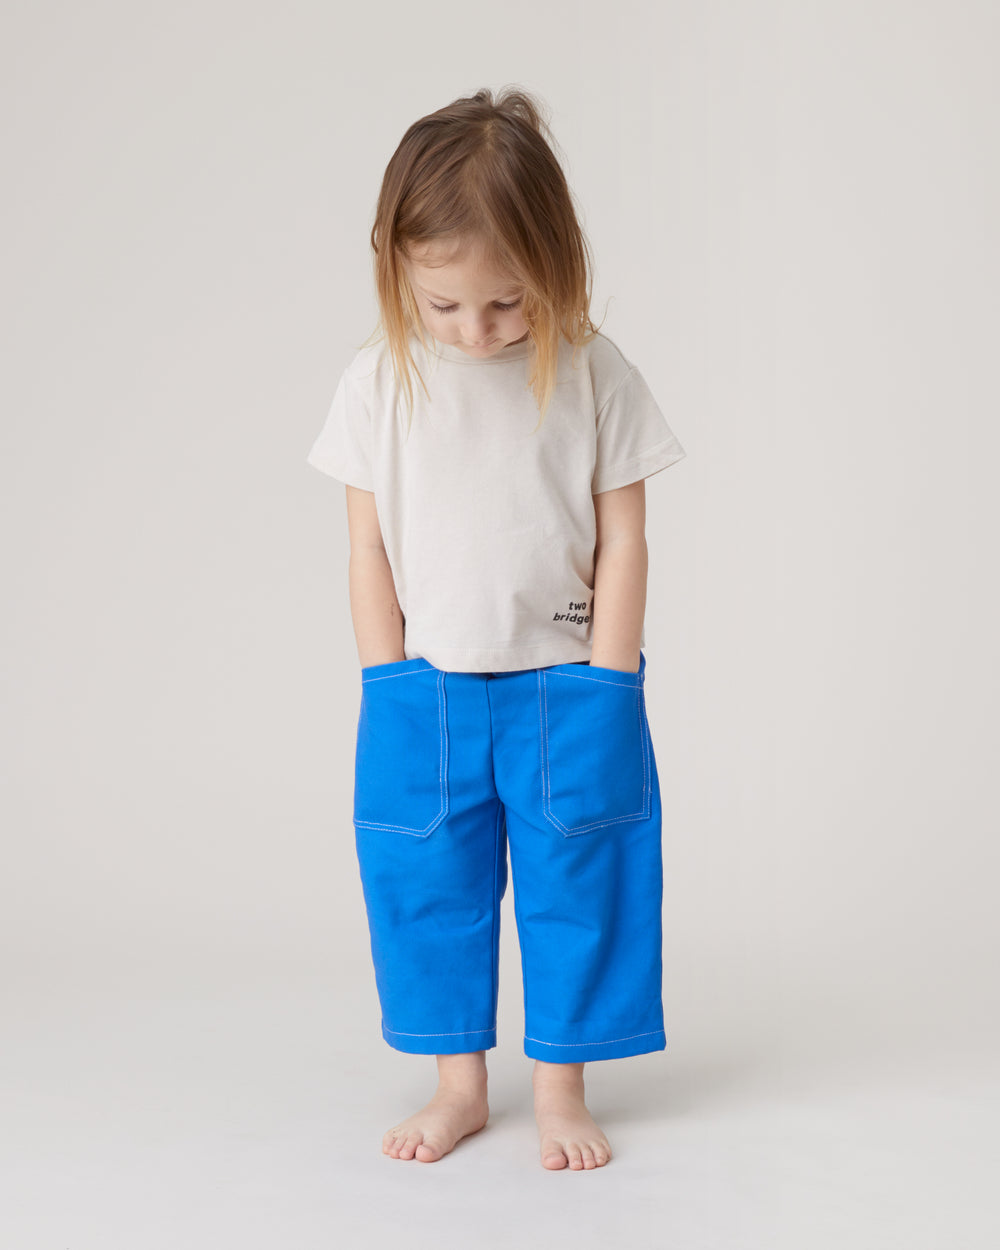 Chatham Trouser in Royal Blue